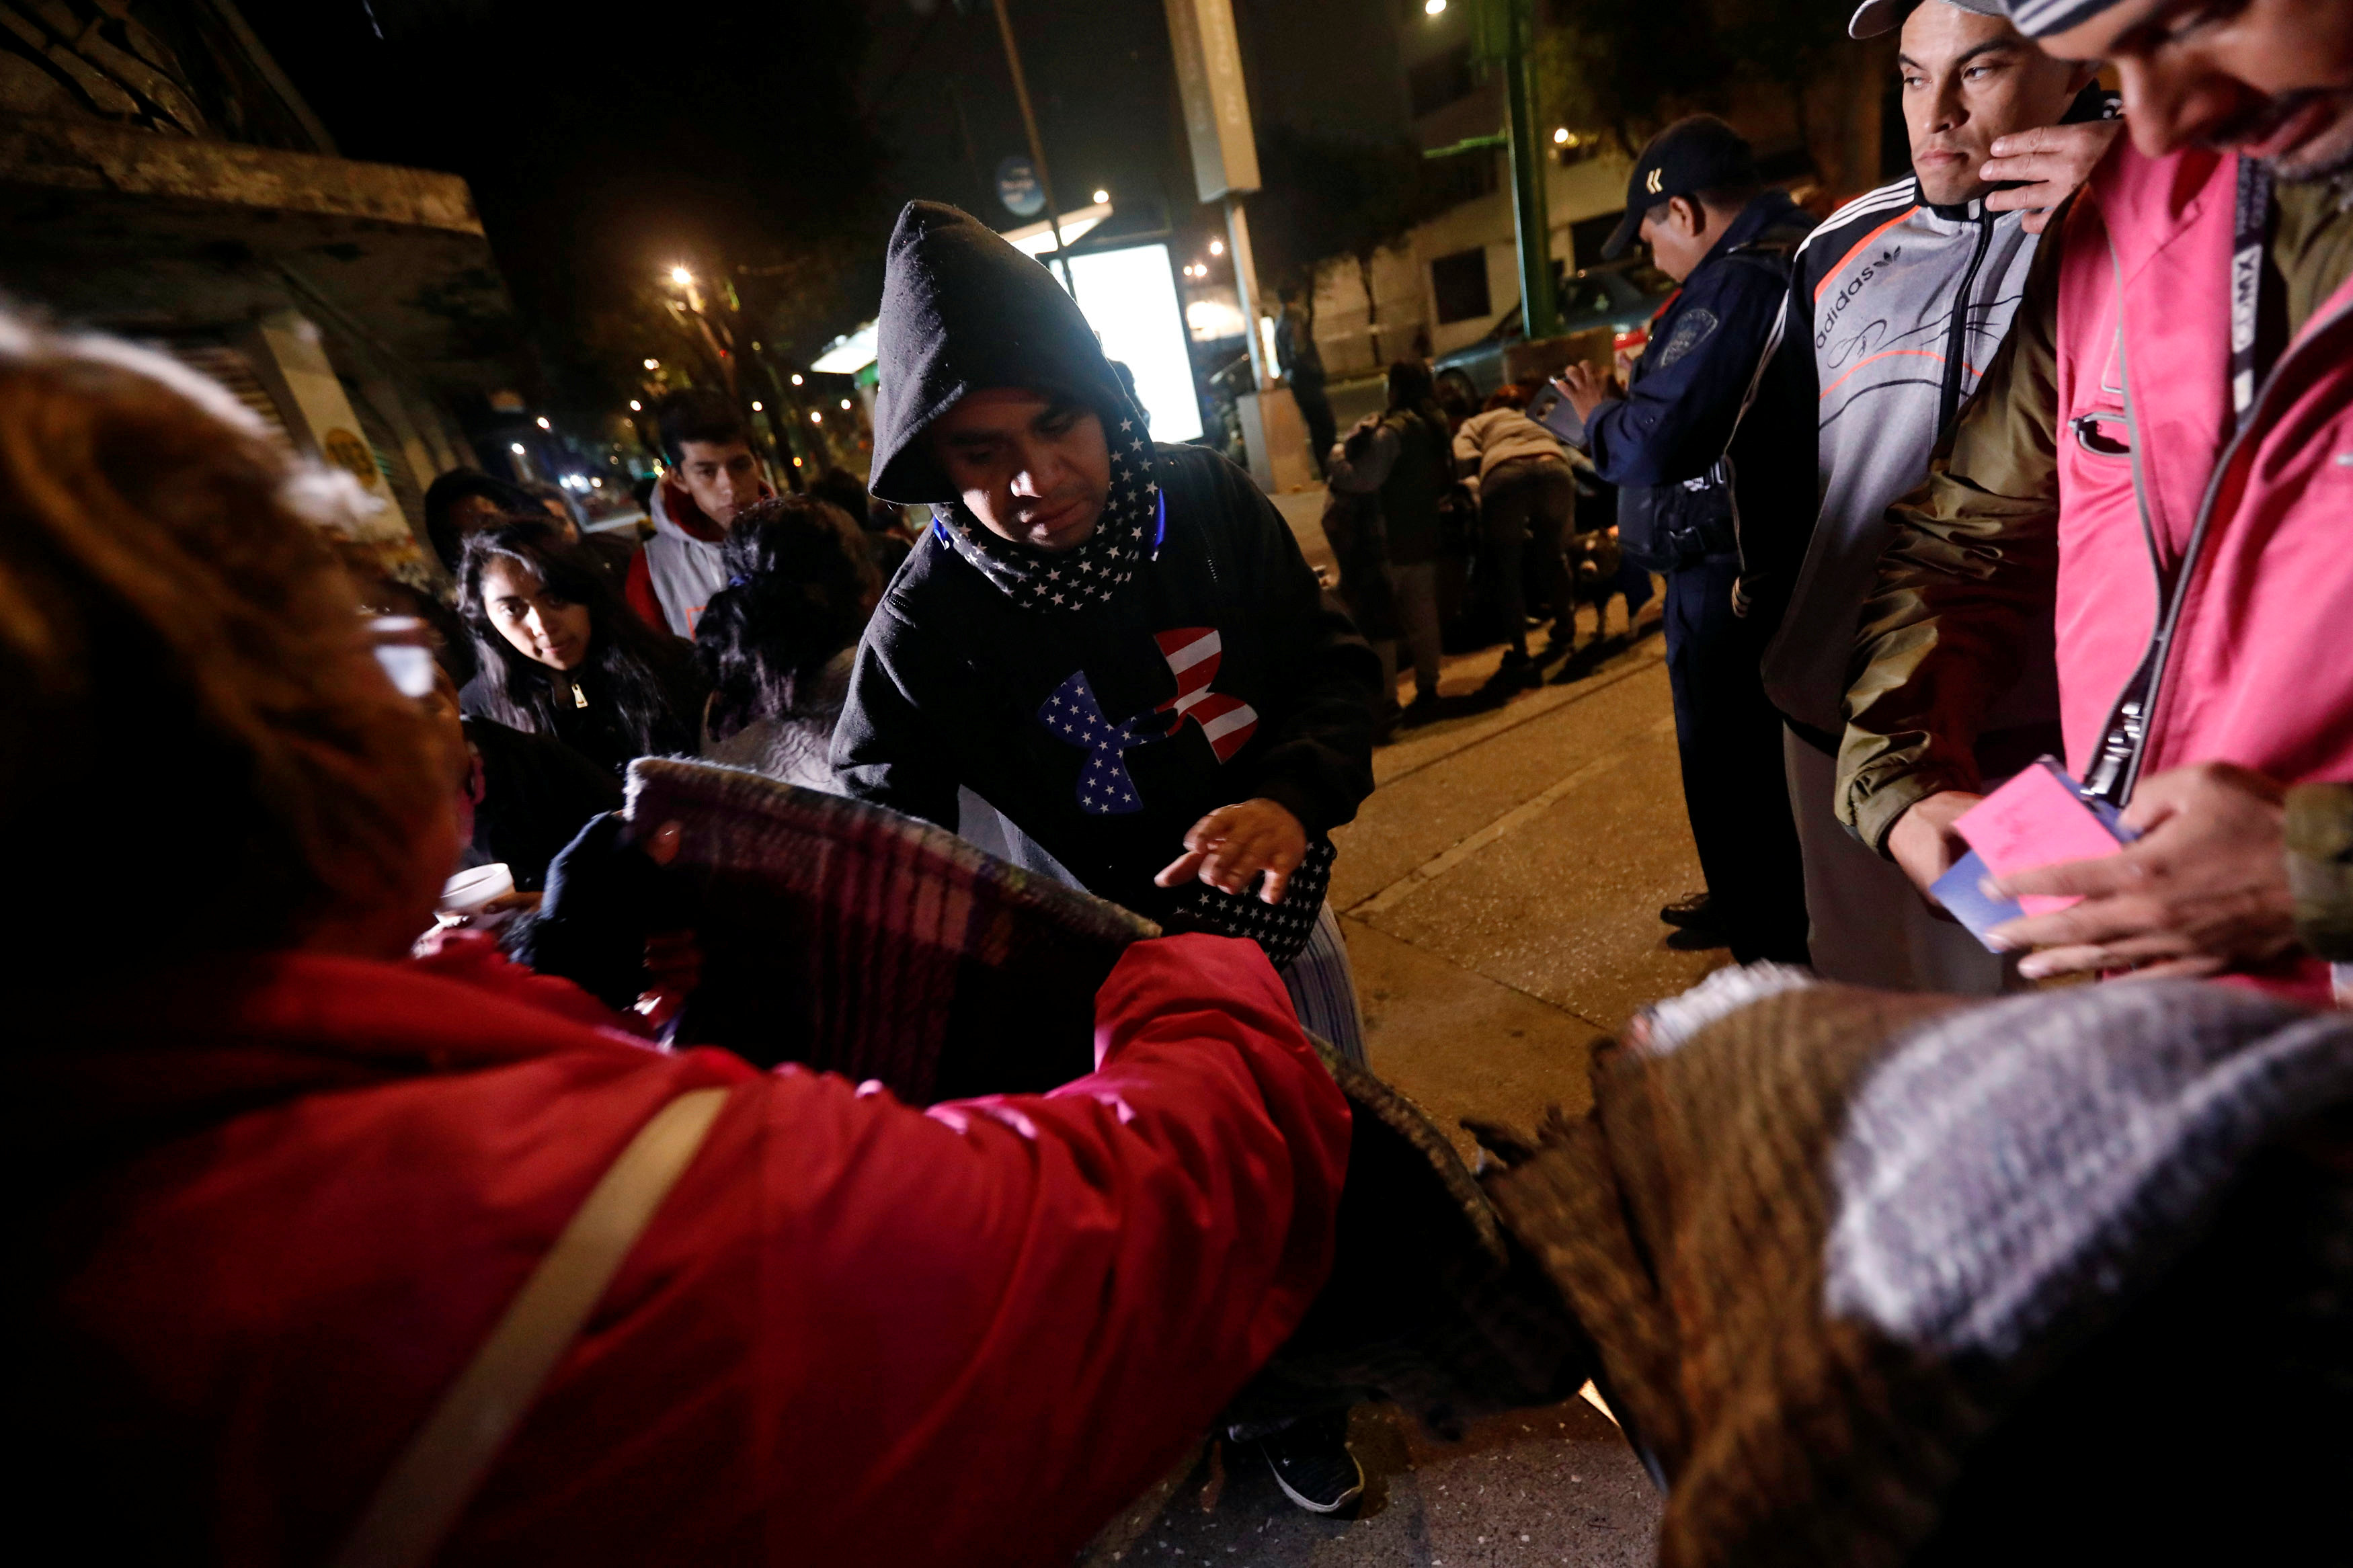 People gather on a street as they receive blankets after an earthquake hit Mexico City, Mexico on Sept. 8, 2017. (REUTERS/Edgard Garrido)